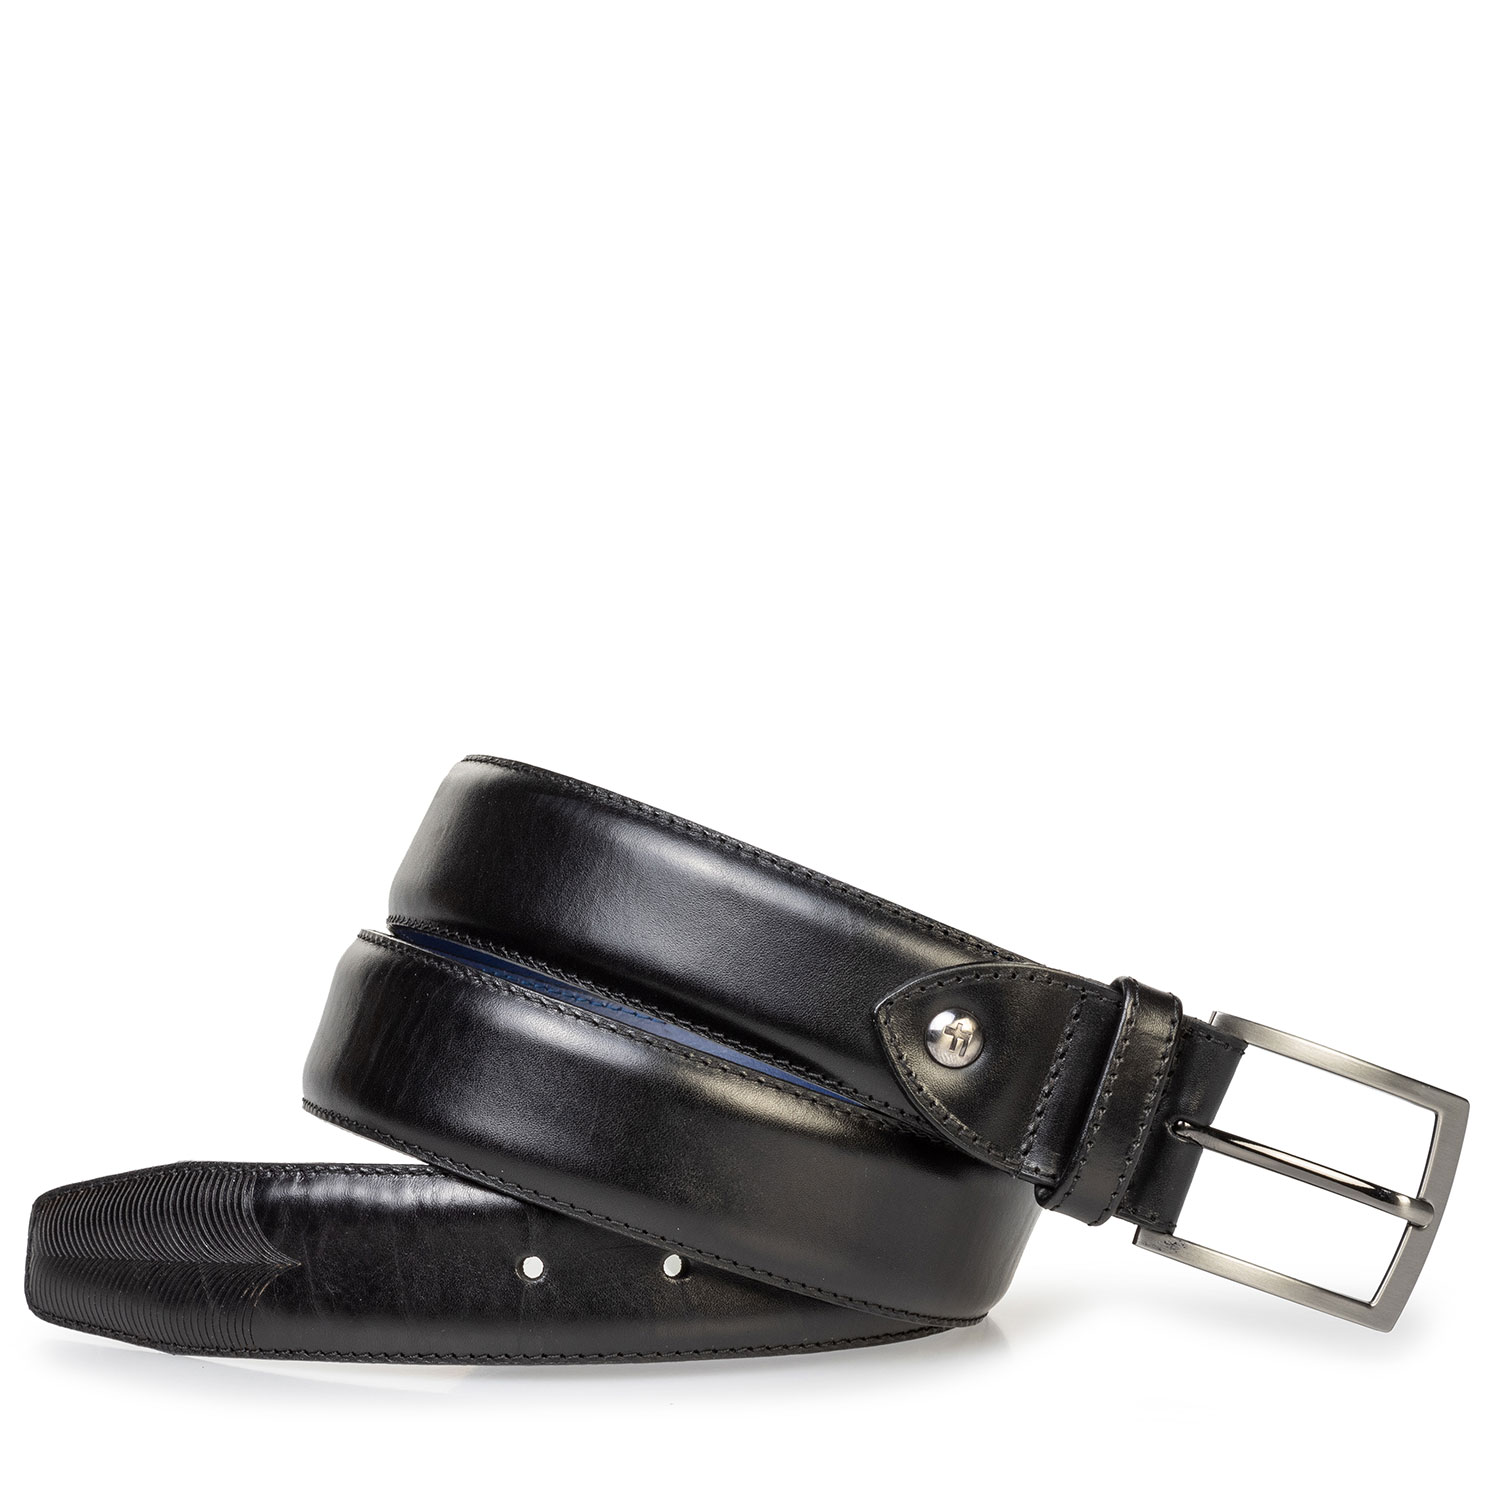 75217/02 - Leather belt with laser-cut print black